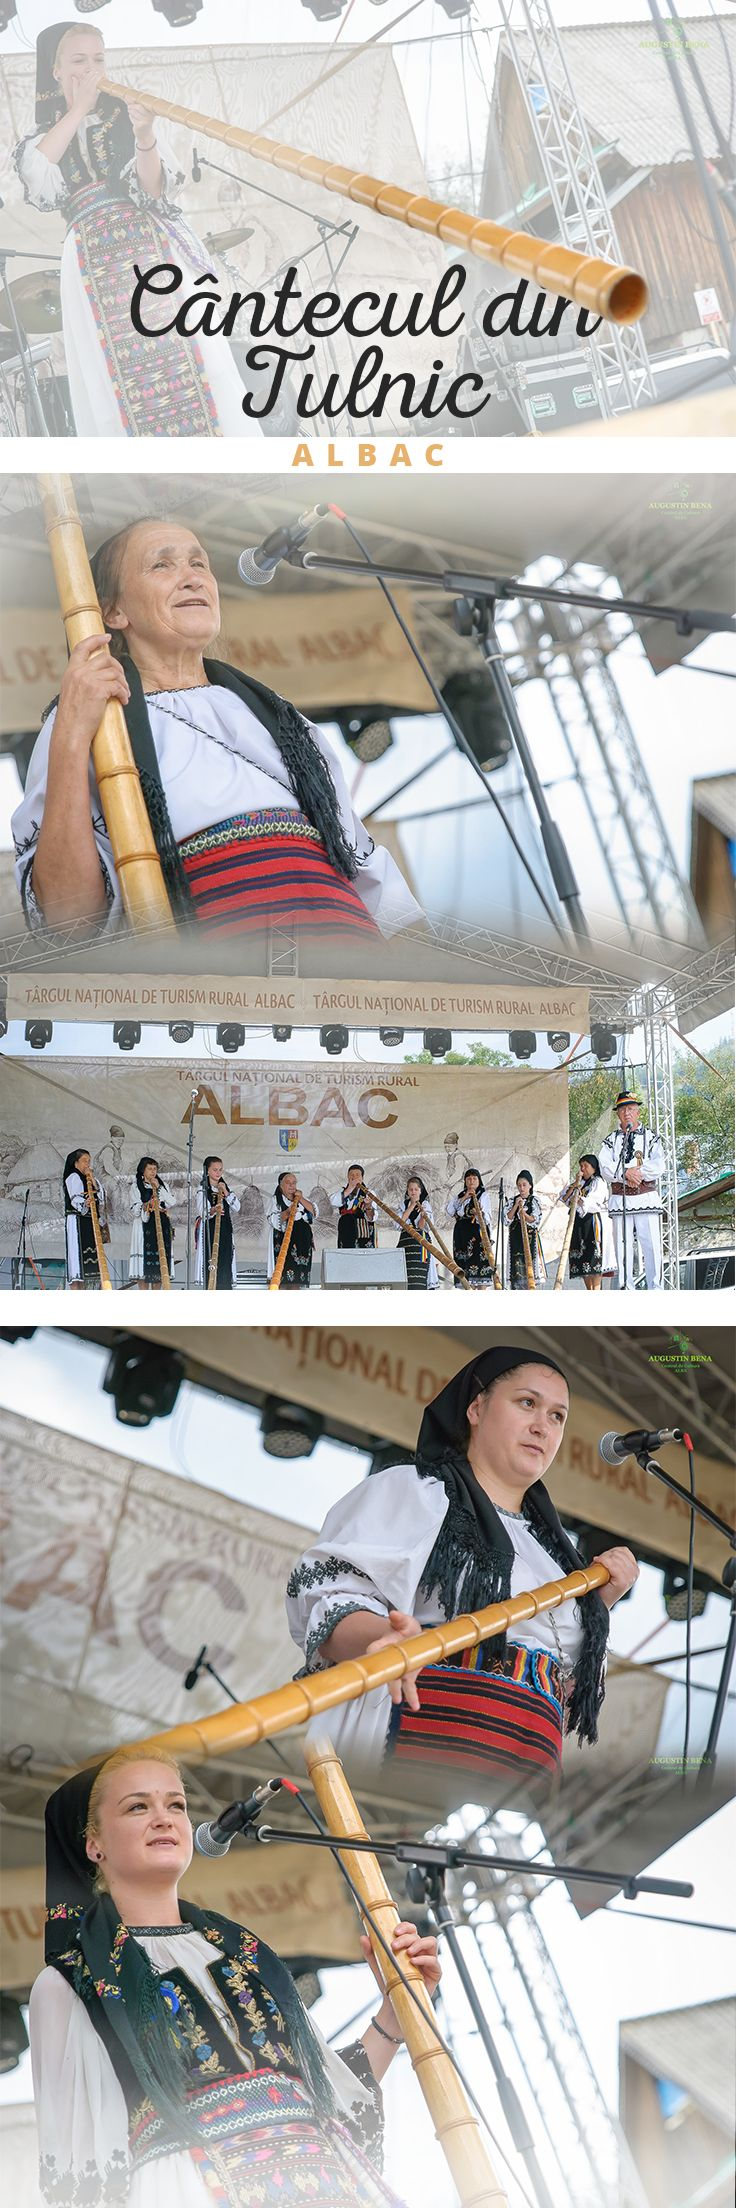 Traditional concert - The National Rural Tourism Fair in Albac, Alba County, Romania.